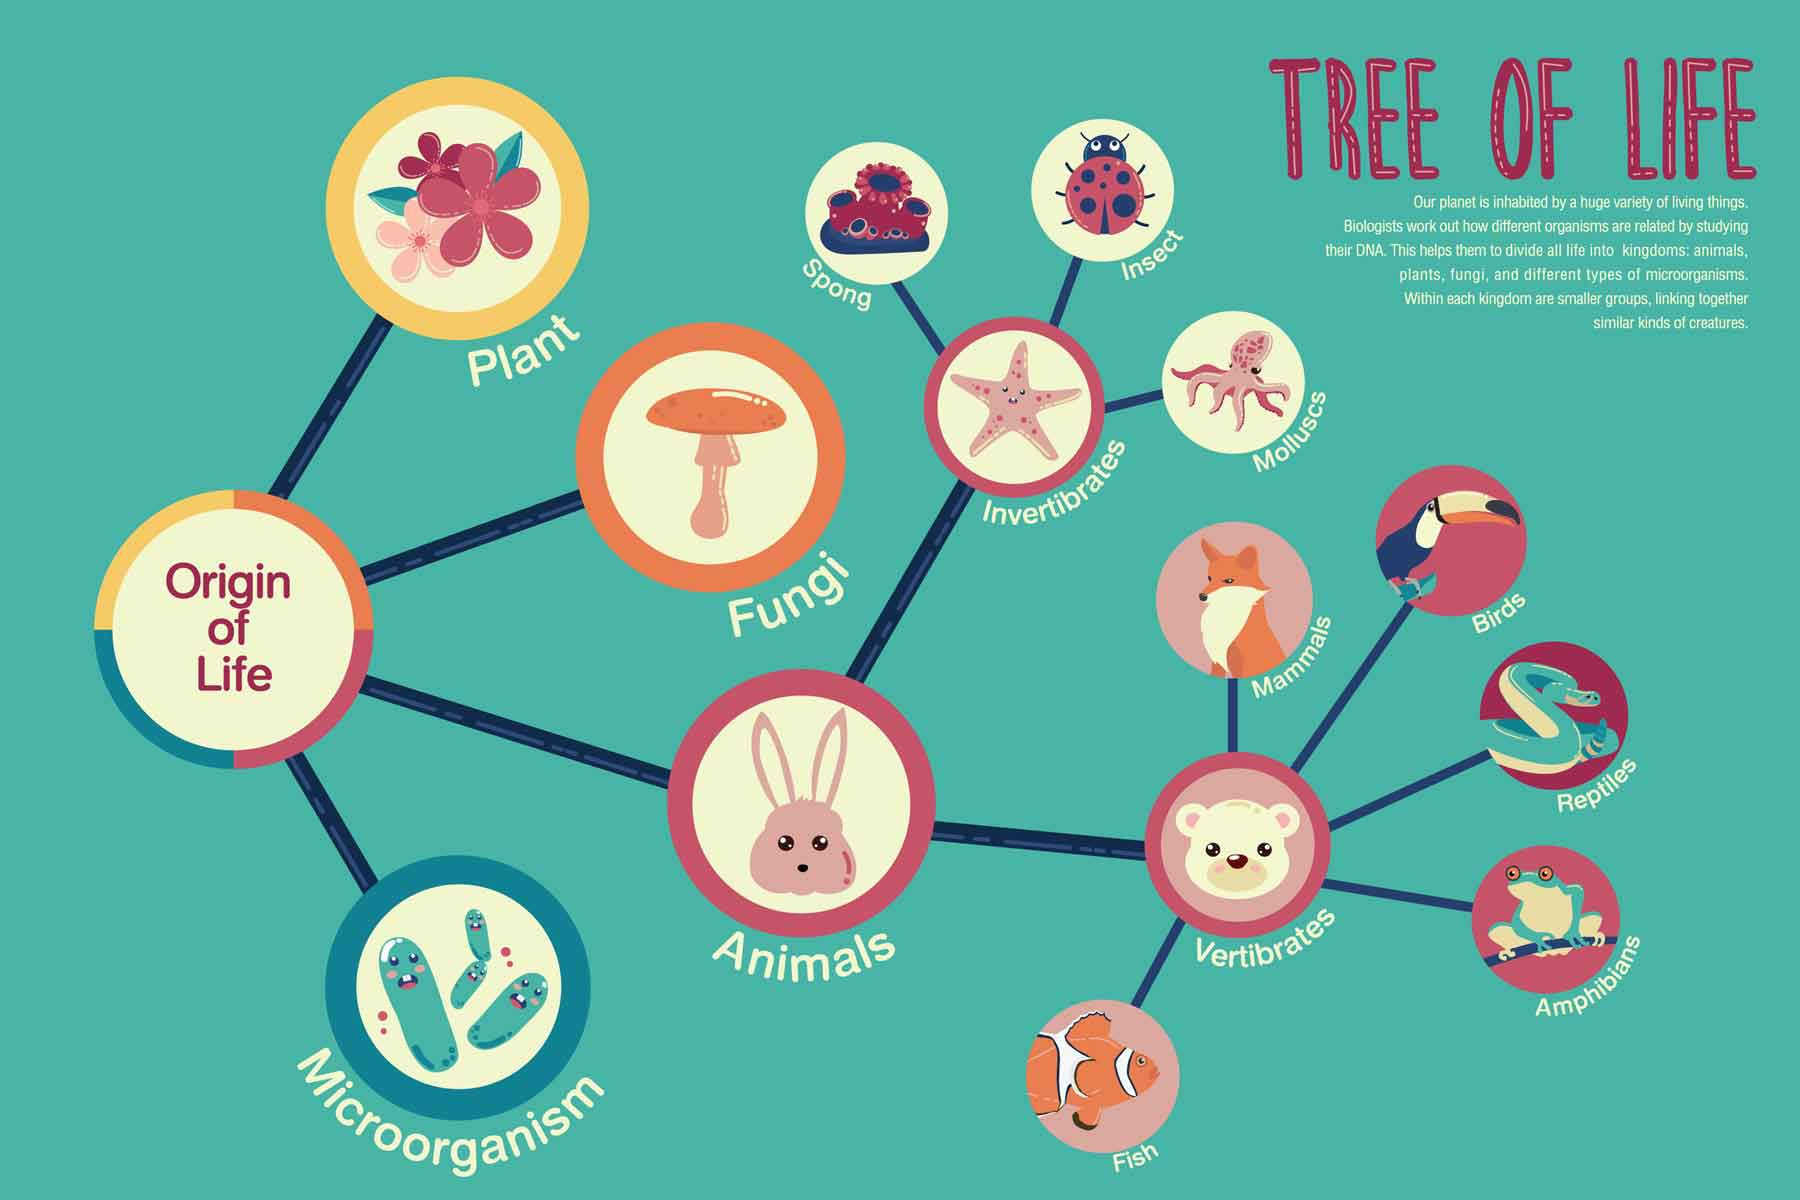 A phylogenetic tree of life.